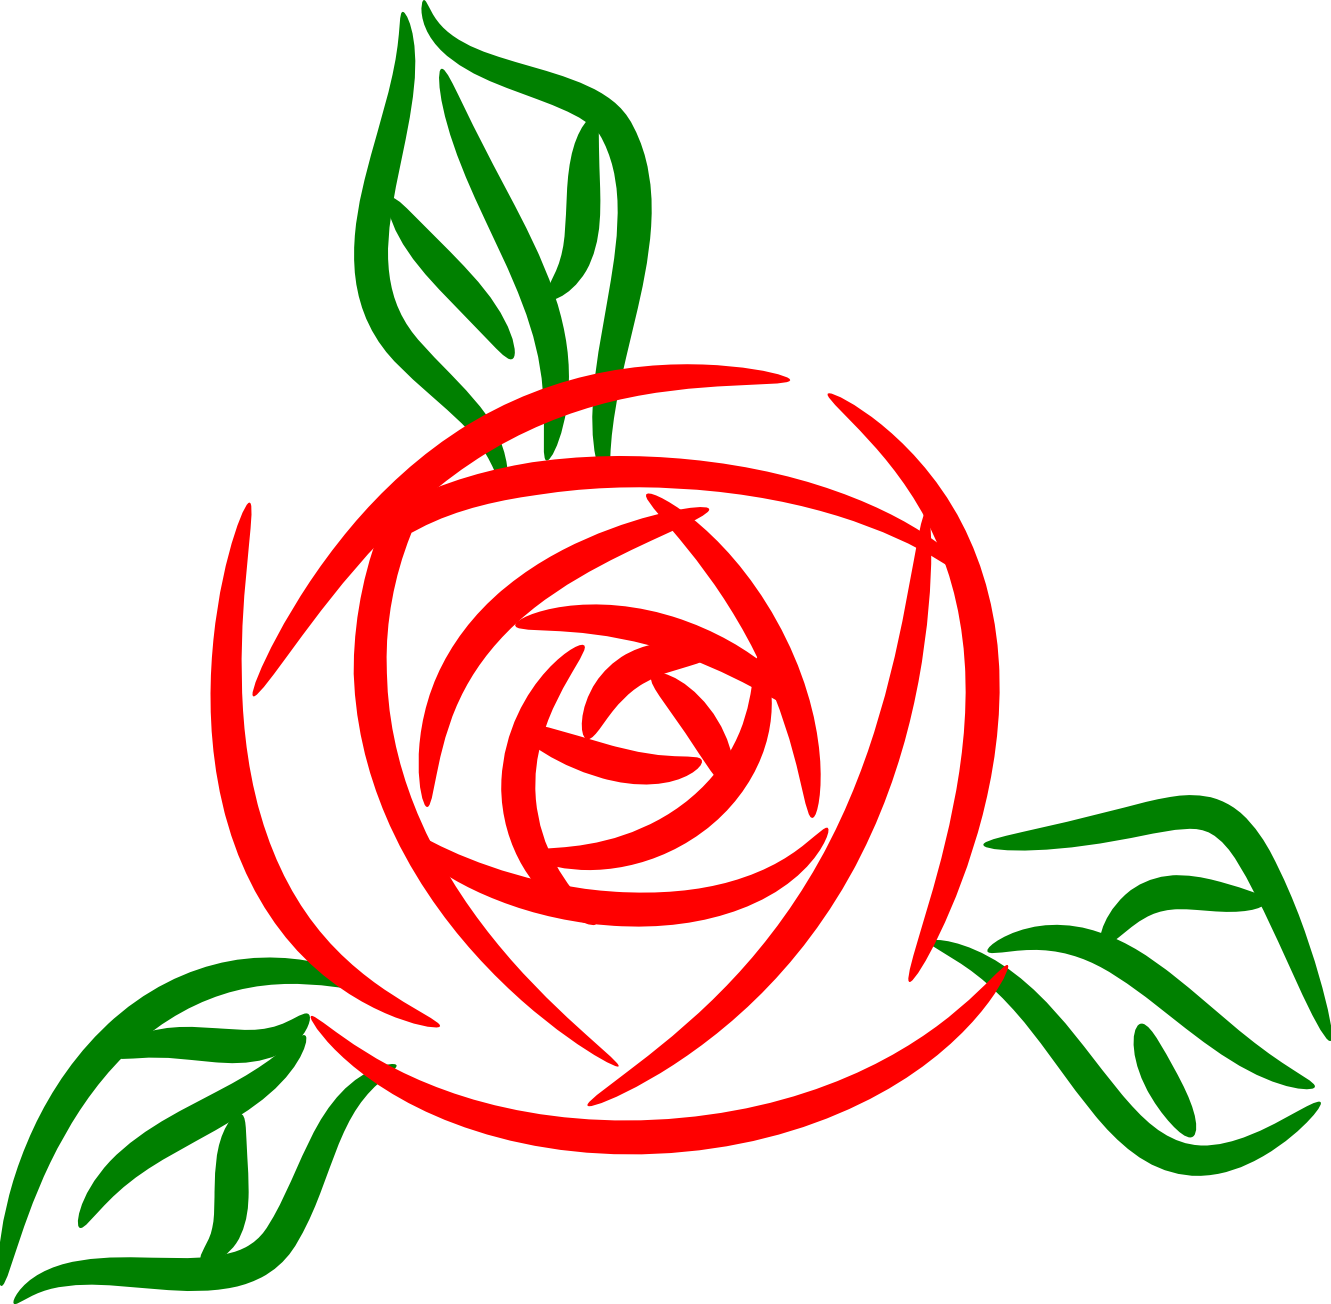 Rose Graphics - ClipArt Best